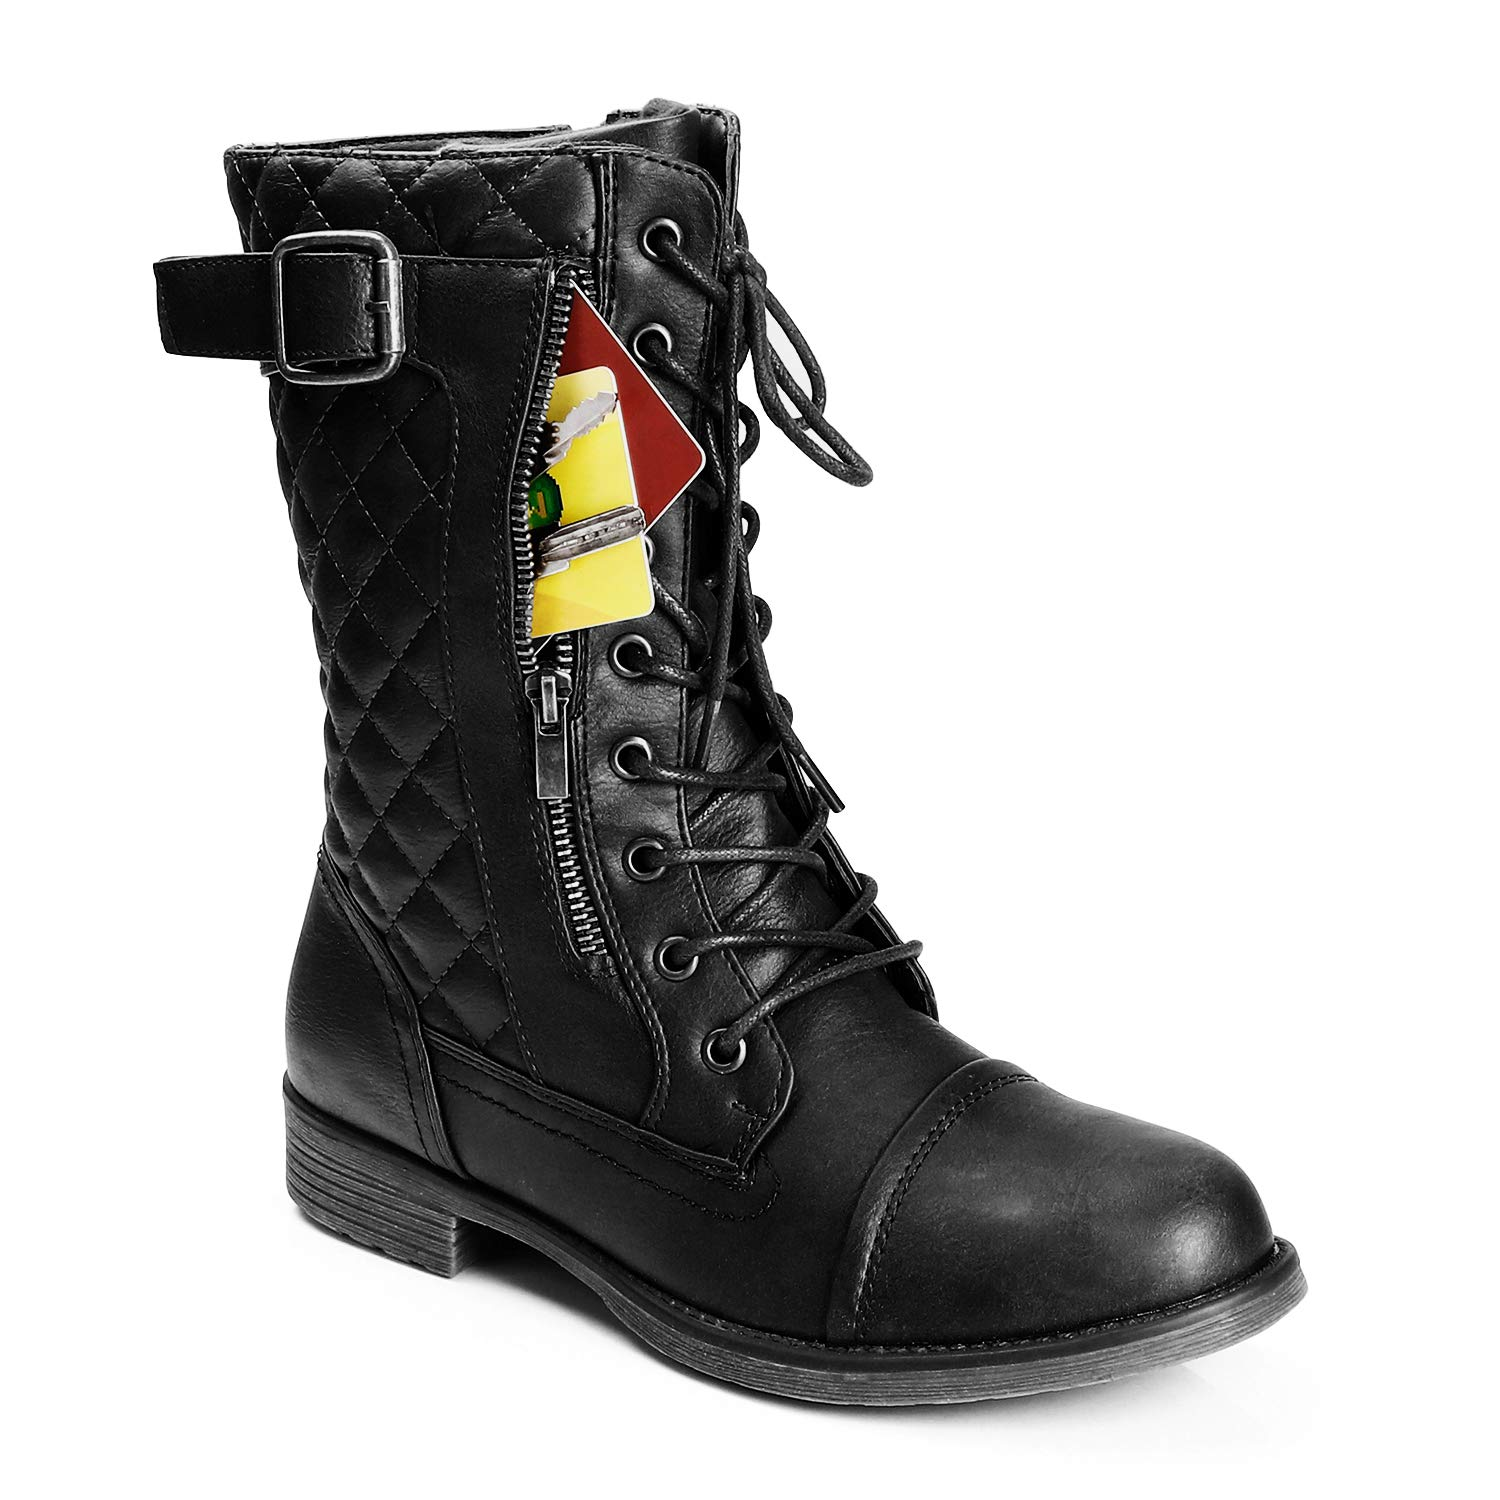 Trary Women's Winter Lace Up Mid Calf Military Combat Boots